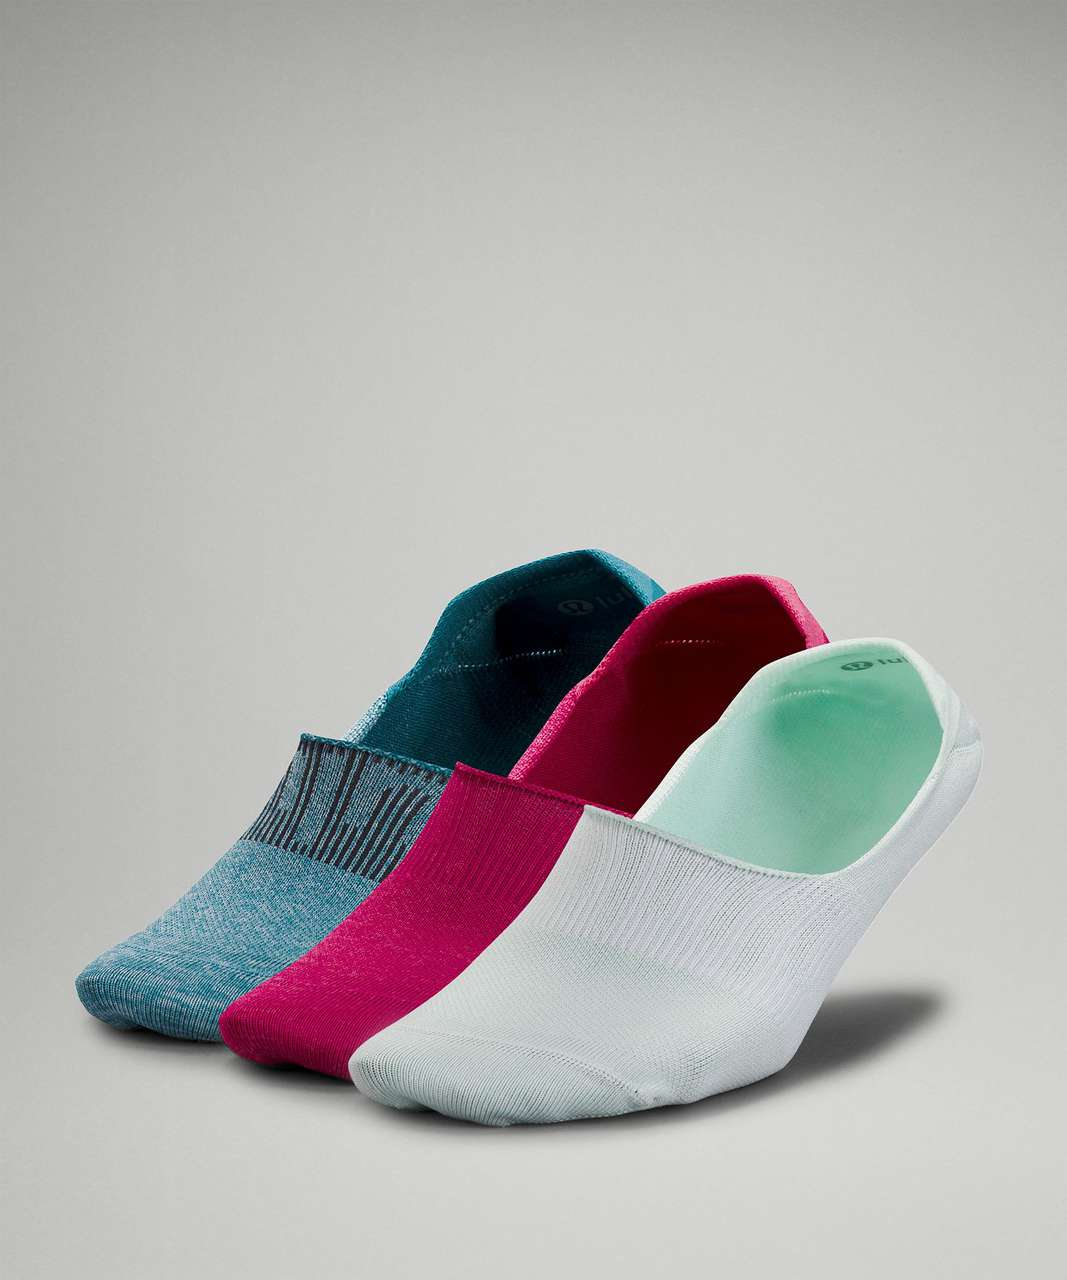 Lululemon Daily Stride No Show Sock *3 Pack - Delicate Mint / Pink Lychee / Capture Blue